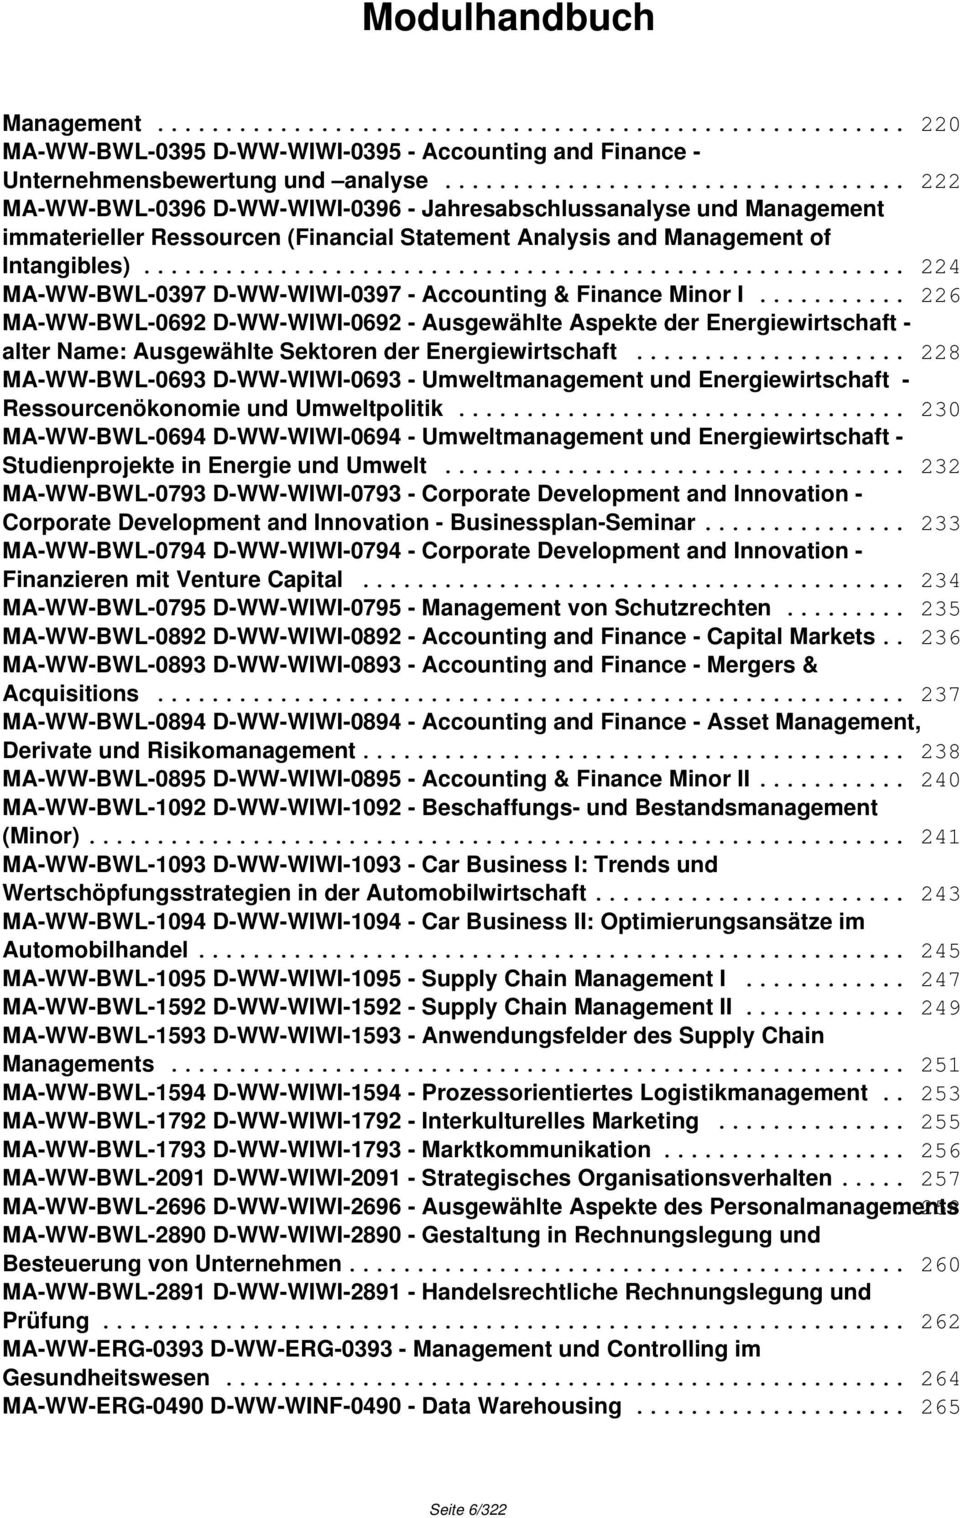 .. 224 MA-WW-BWL-0397 D-WW-WIWI-0397 - Accounting & Finance Minor I.